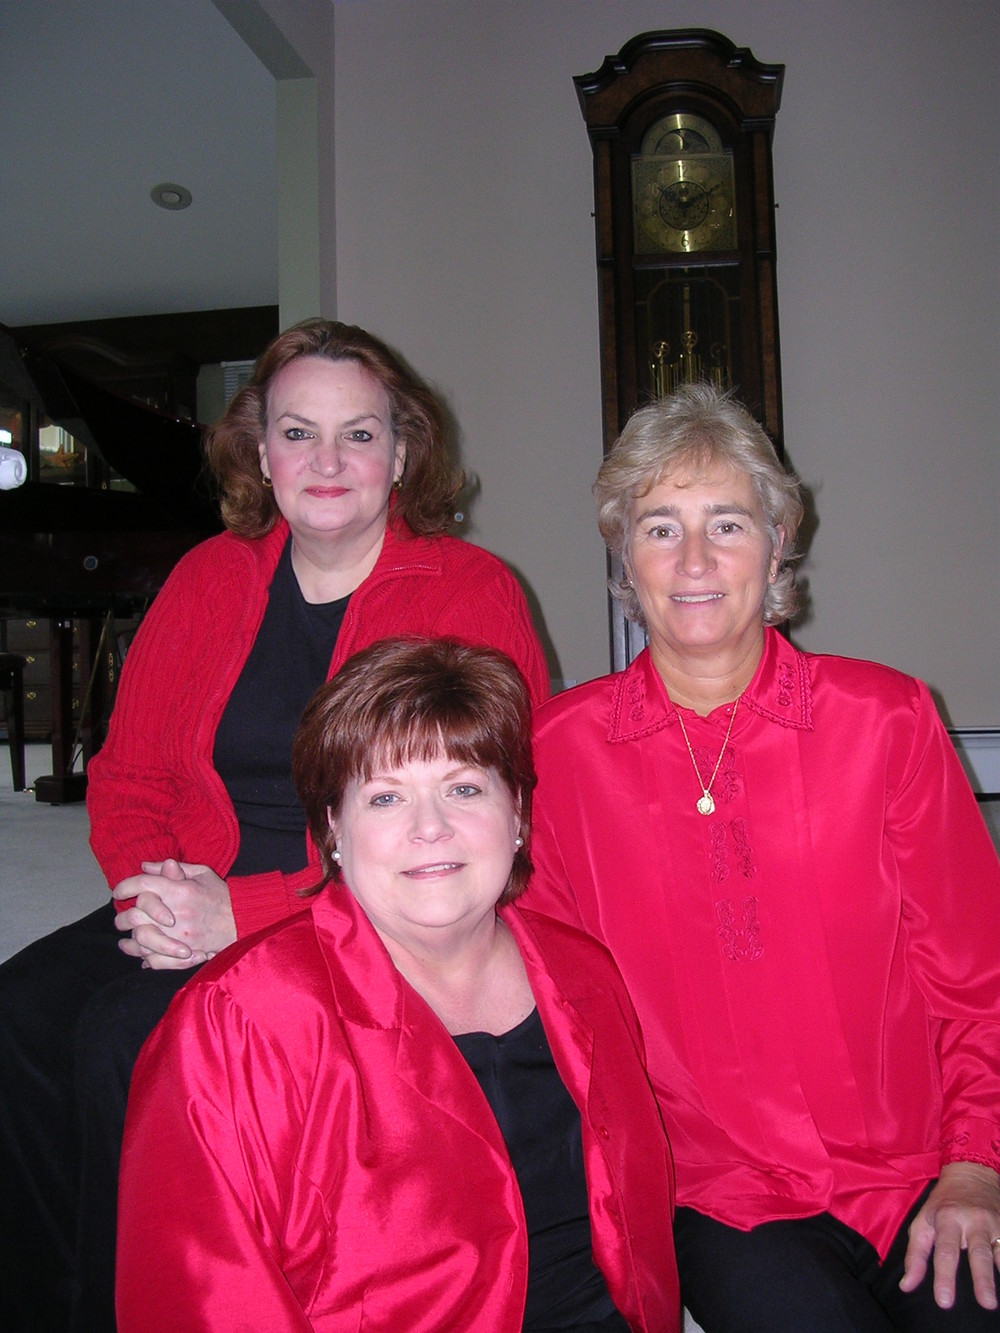 Pictured above:  Jeanie Cupp, Juanita Beavers, and Cindy Rapp